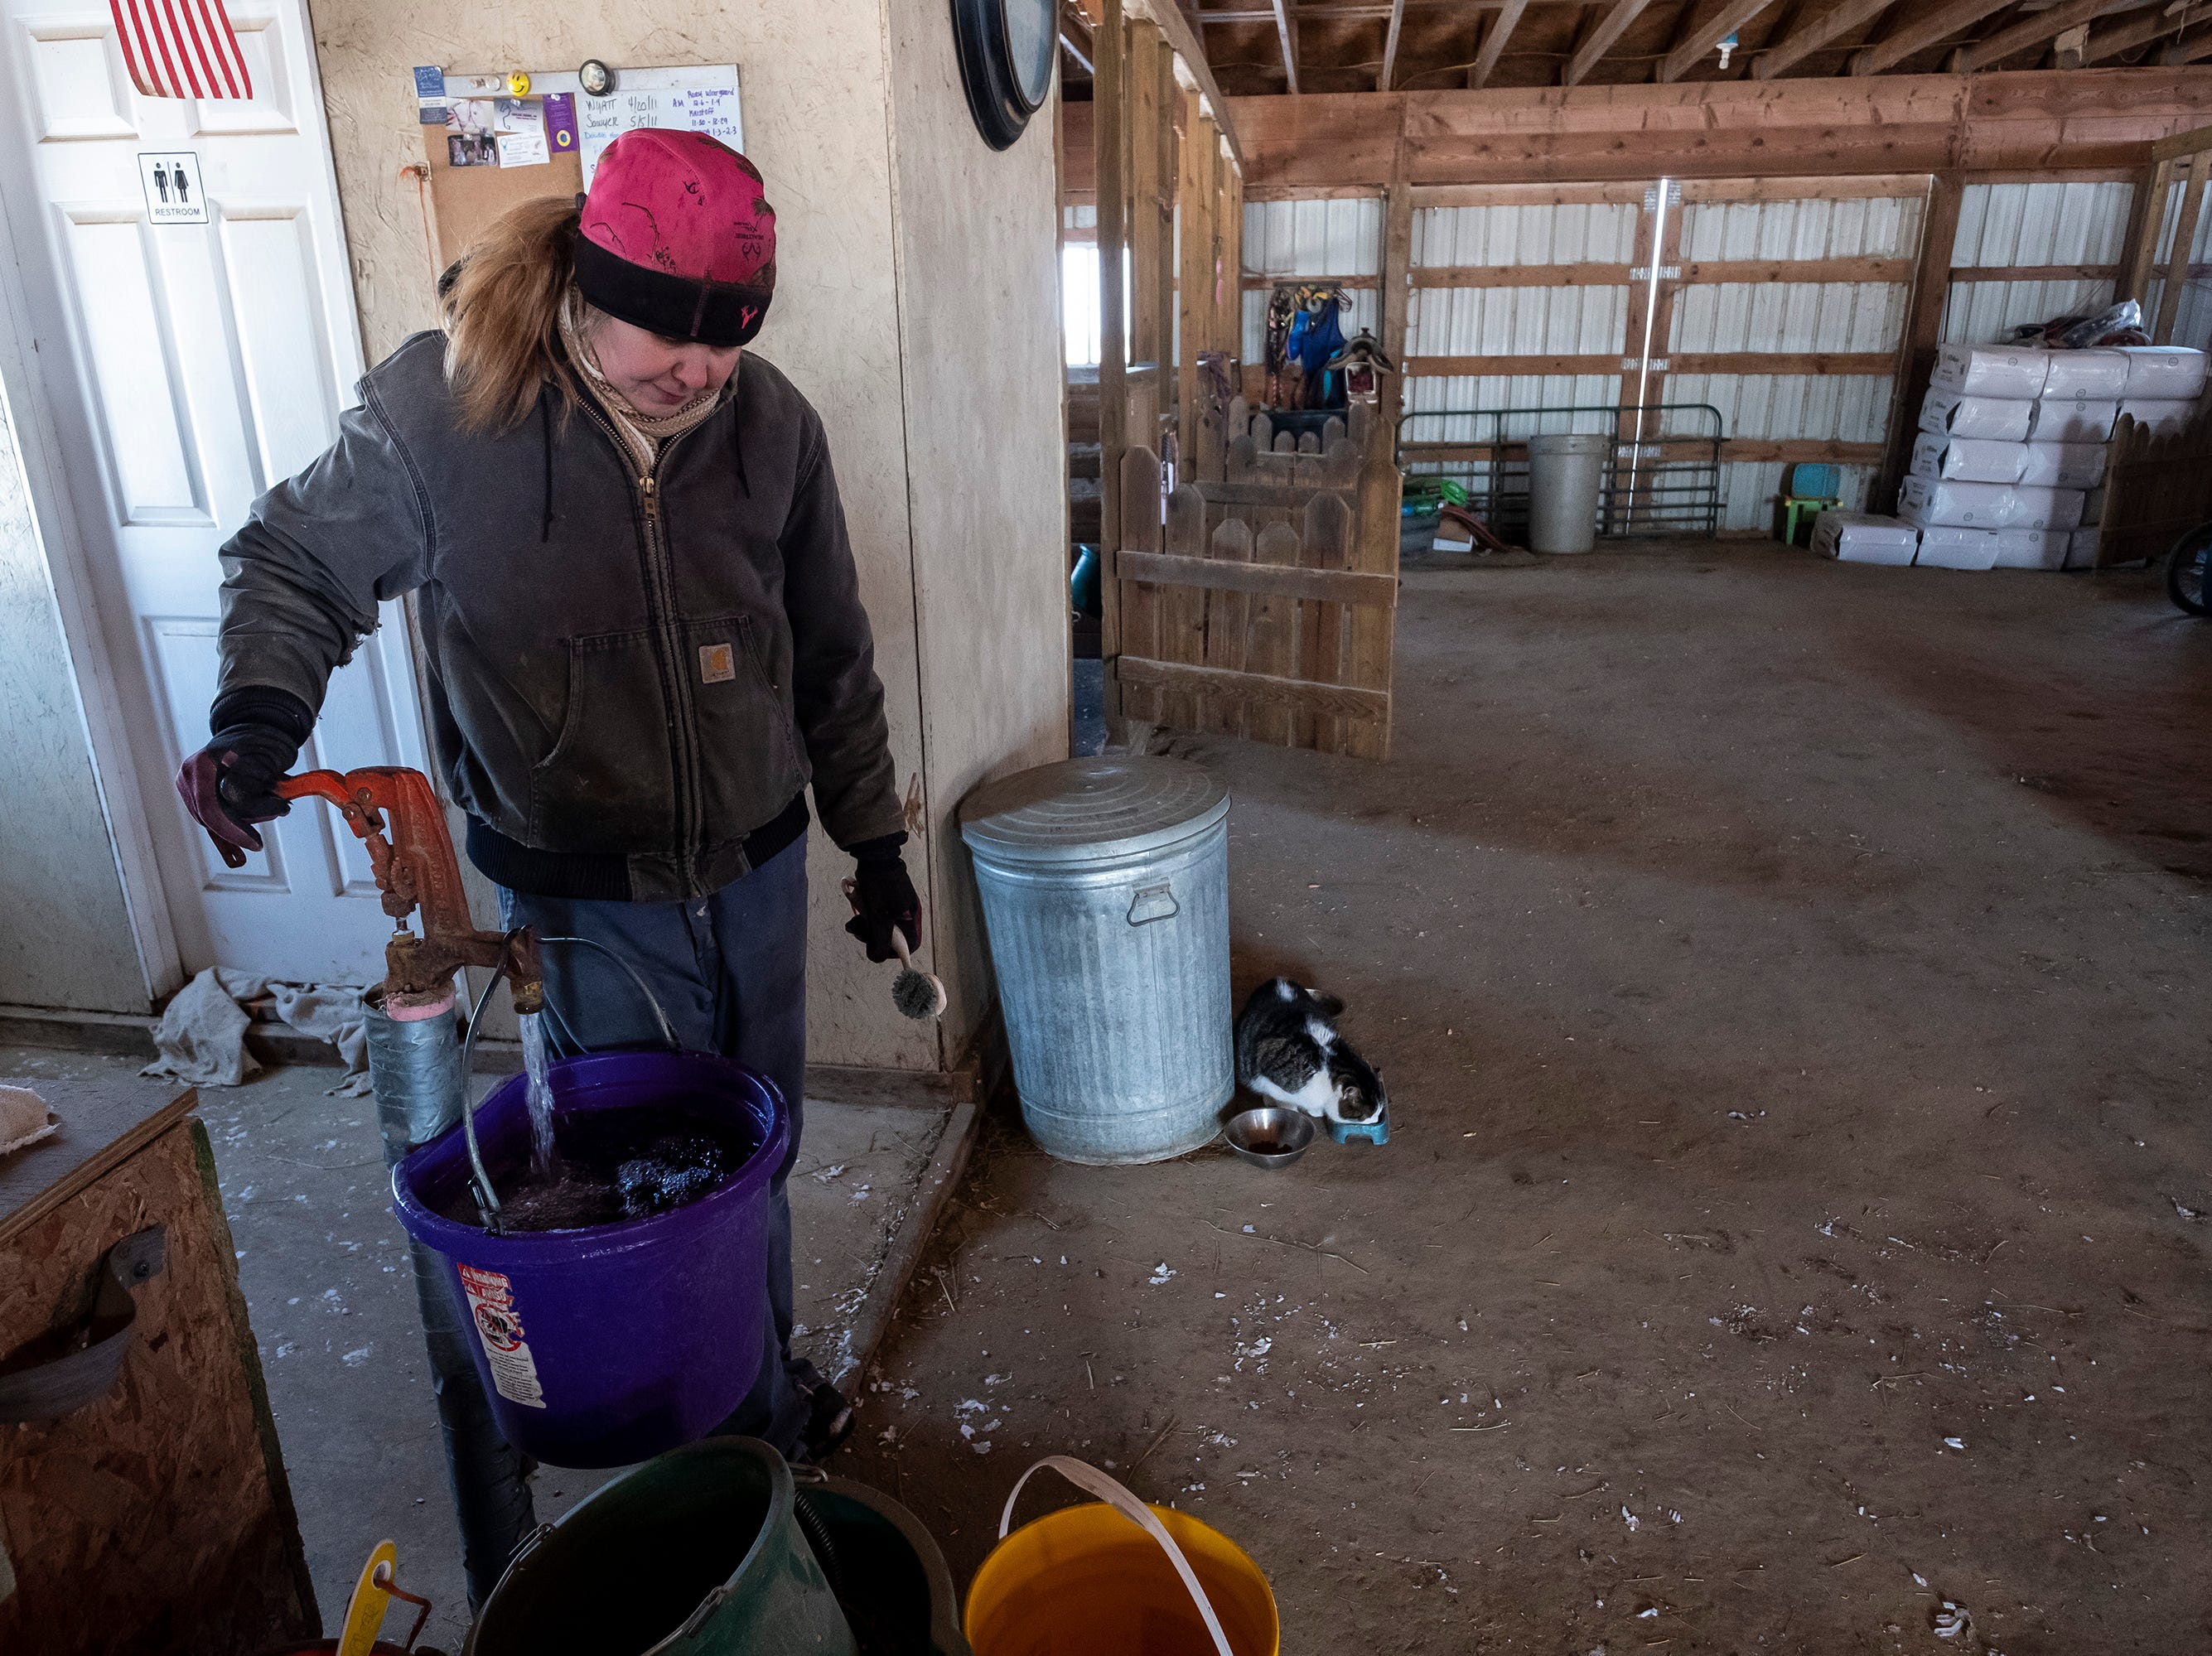 After the equine dentists have left, Tammie Miller returns to the farm's daily chores. On an average day, Miller said the morning chores will take about three hours, while the nightly chores usually take less than an hour and a half. In the warmer months of the year she'll spend more time in the barn with the animals.